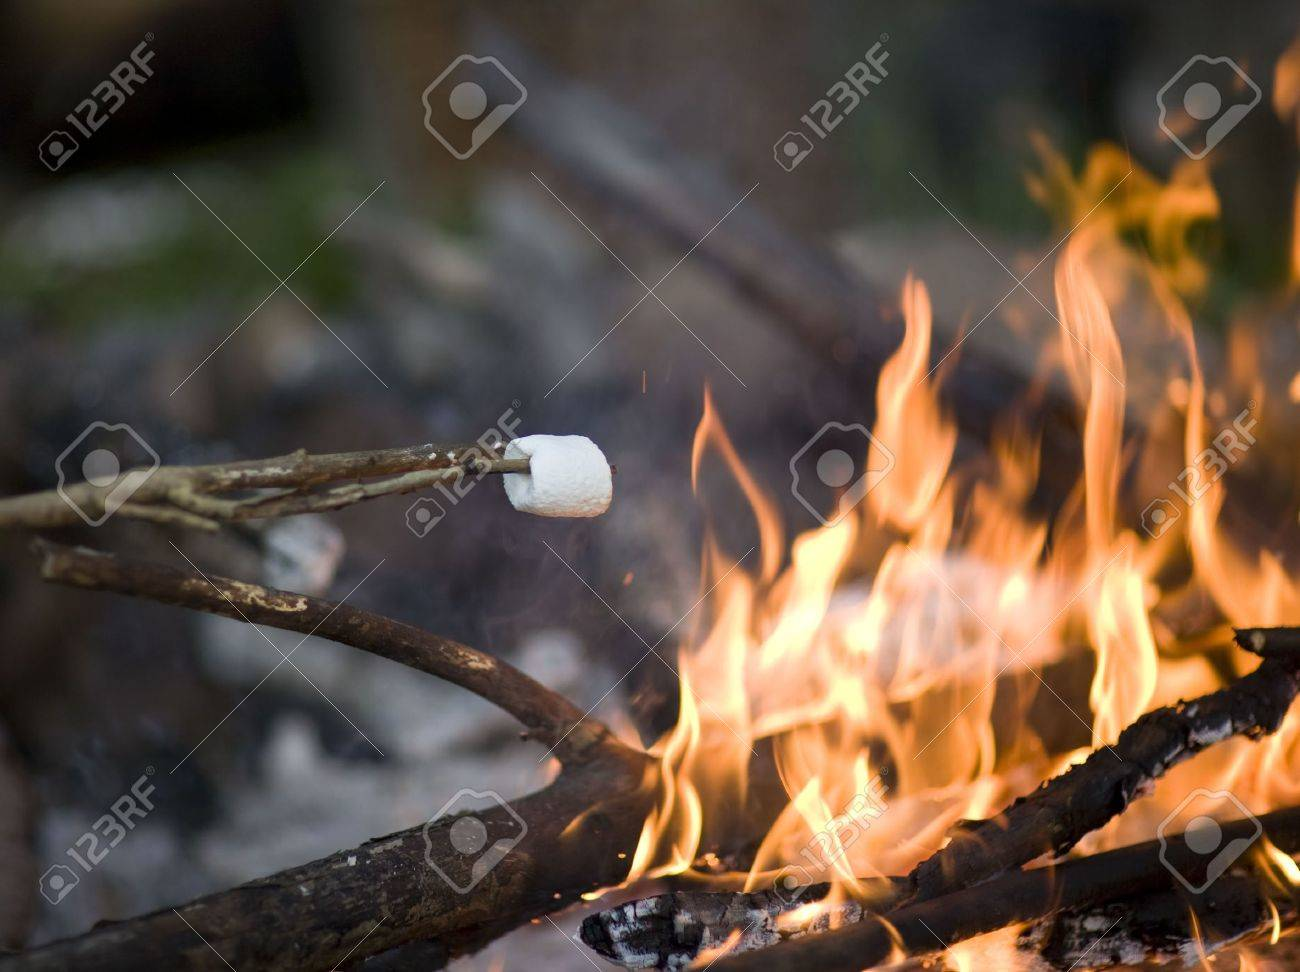 Roasting Marshmallow Over A Raging Campfire Stock Photo